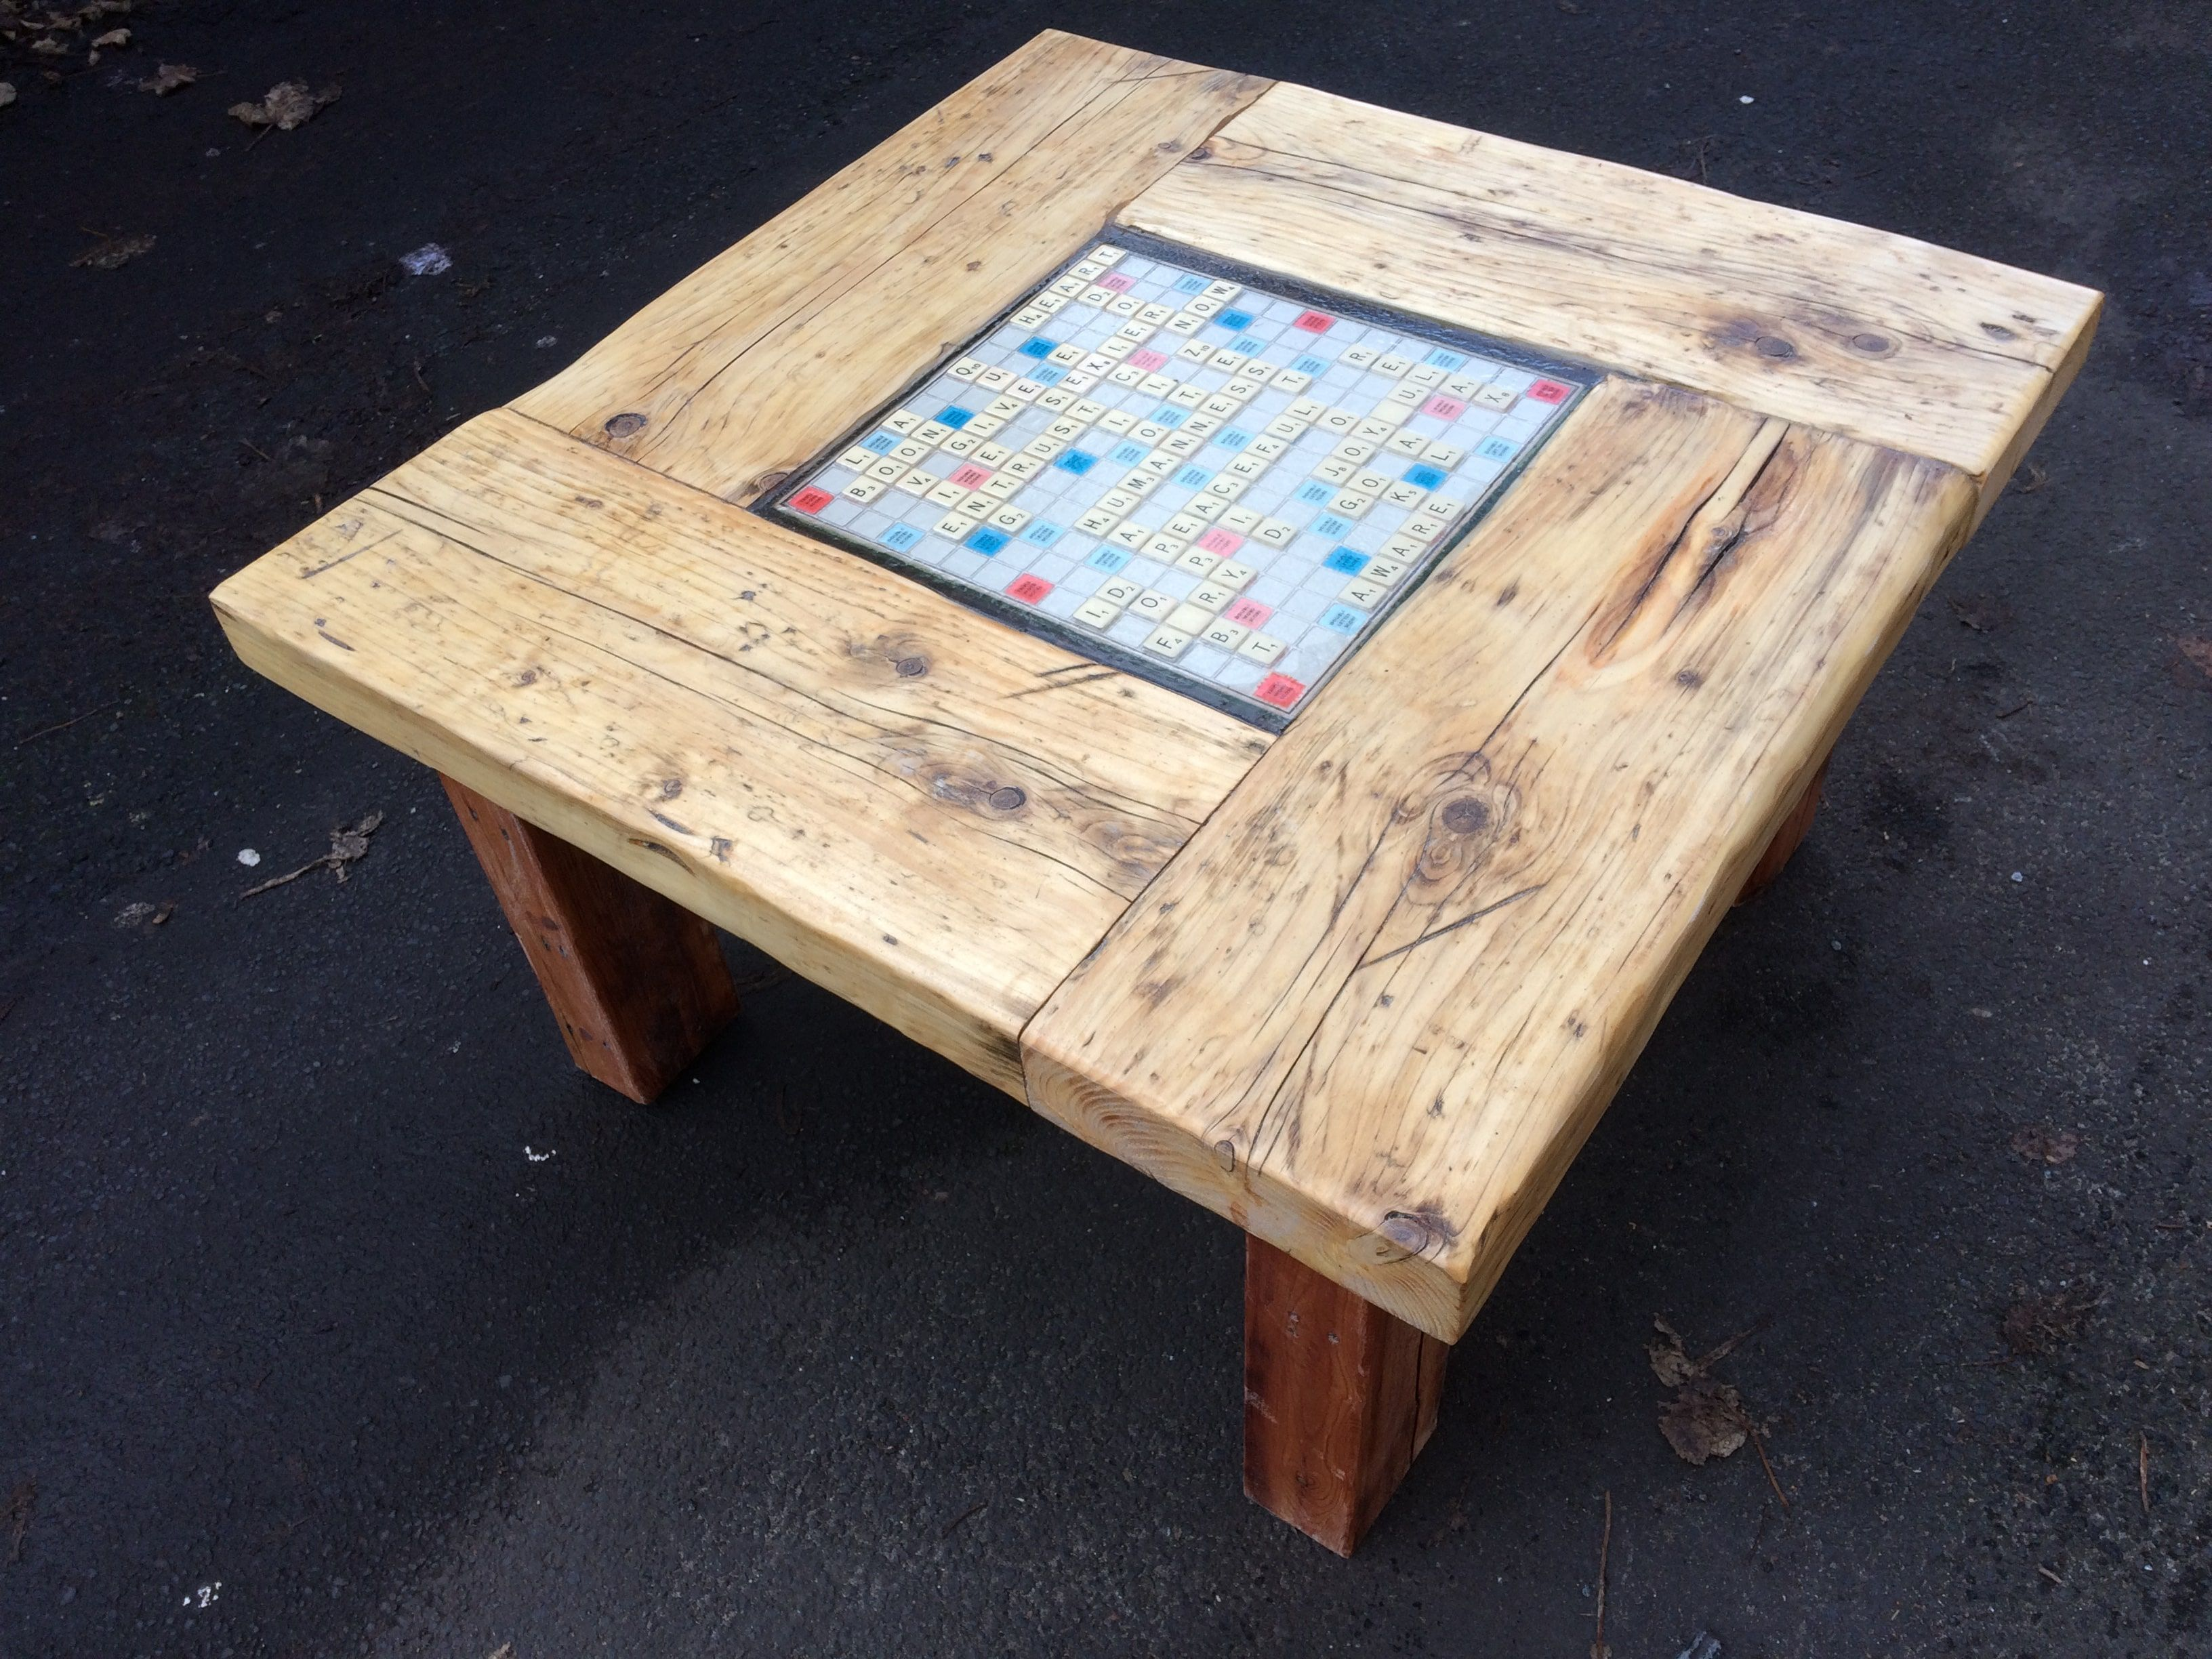 Coffee Table Made From Scaffold Boards And Inlaid With A Vintage Scrabble Board And Scrabble Tiles Table Coffee Table Reclaimed Furniture [ 2448 x 3264 Pixel ]